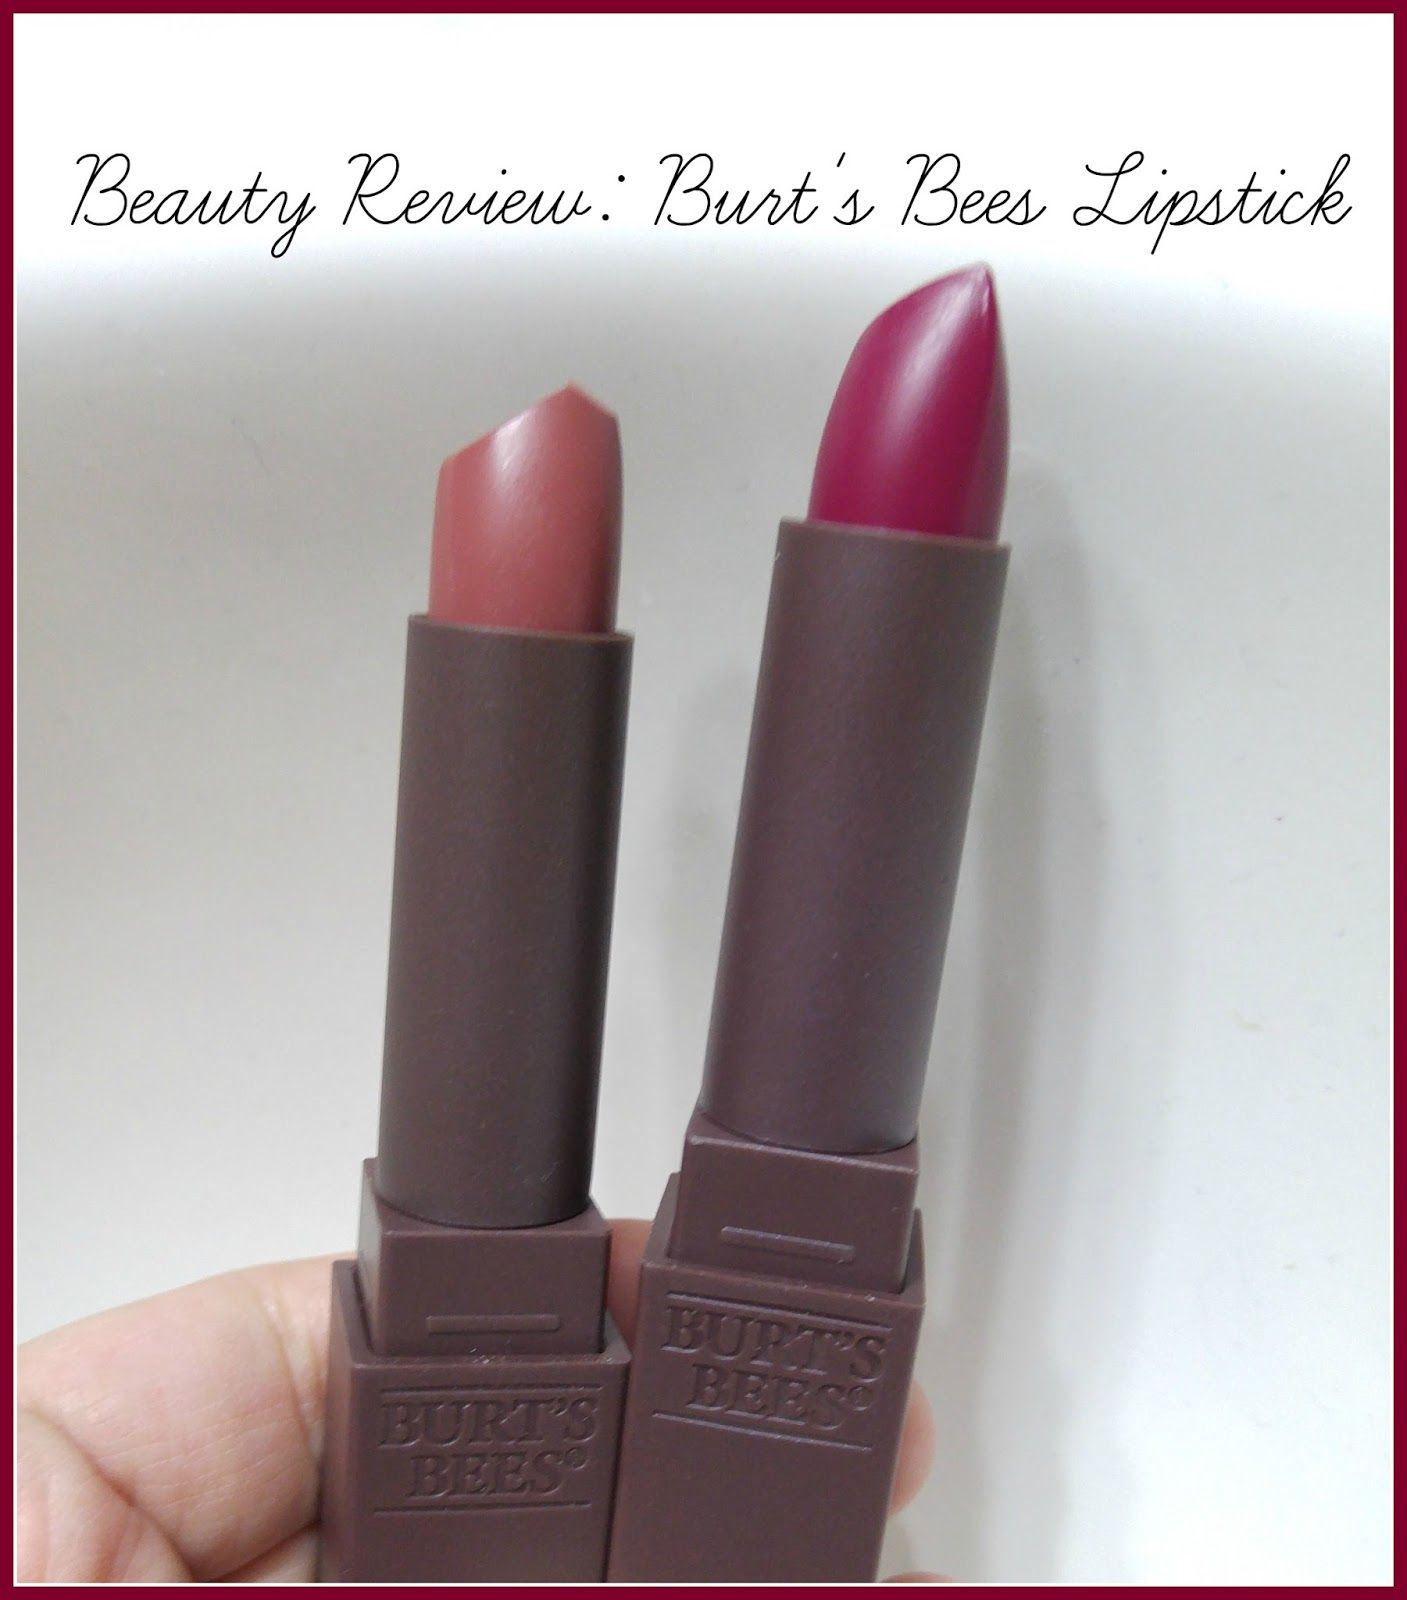 Simply A Facing the New Year newfromburts ad Lipstick